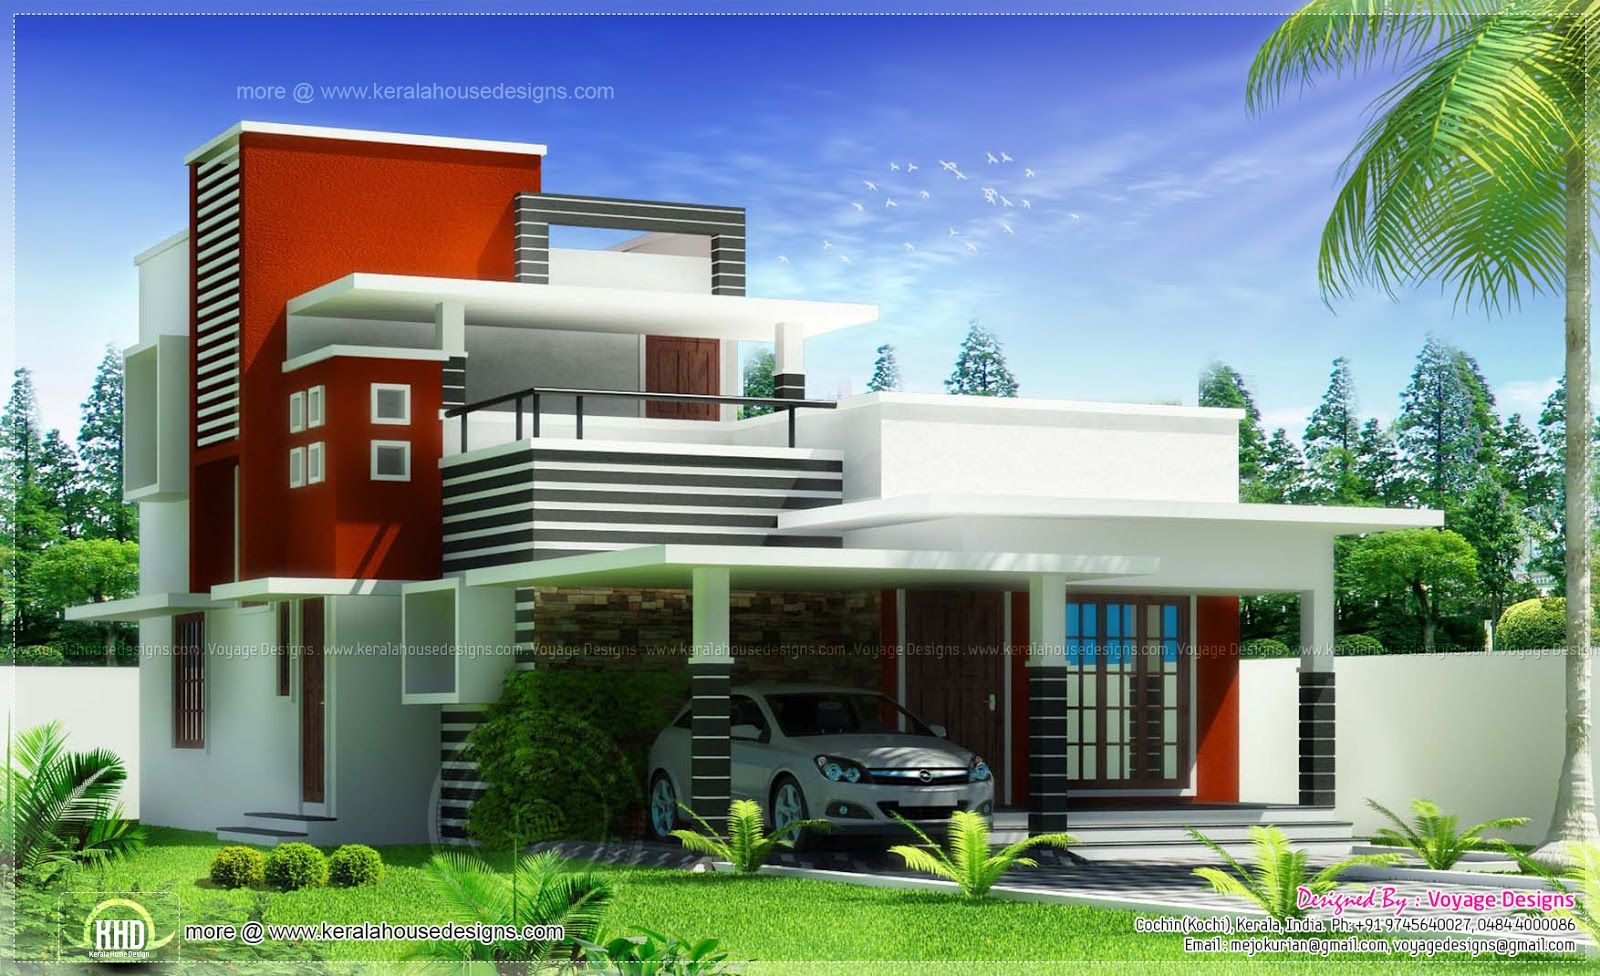 Kerala house designs architecture pinterest kerala for Small house design in kerala